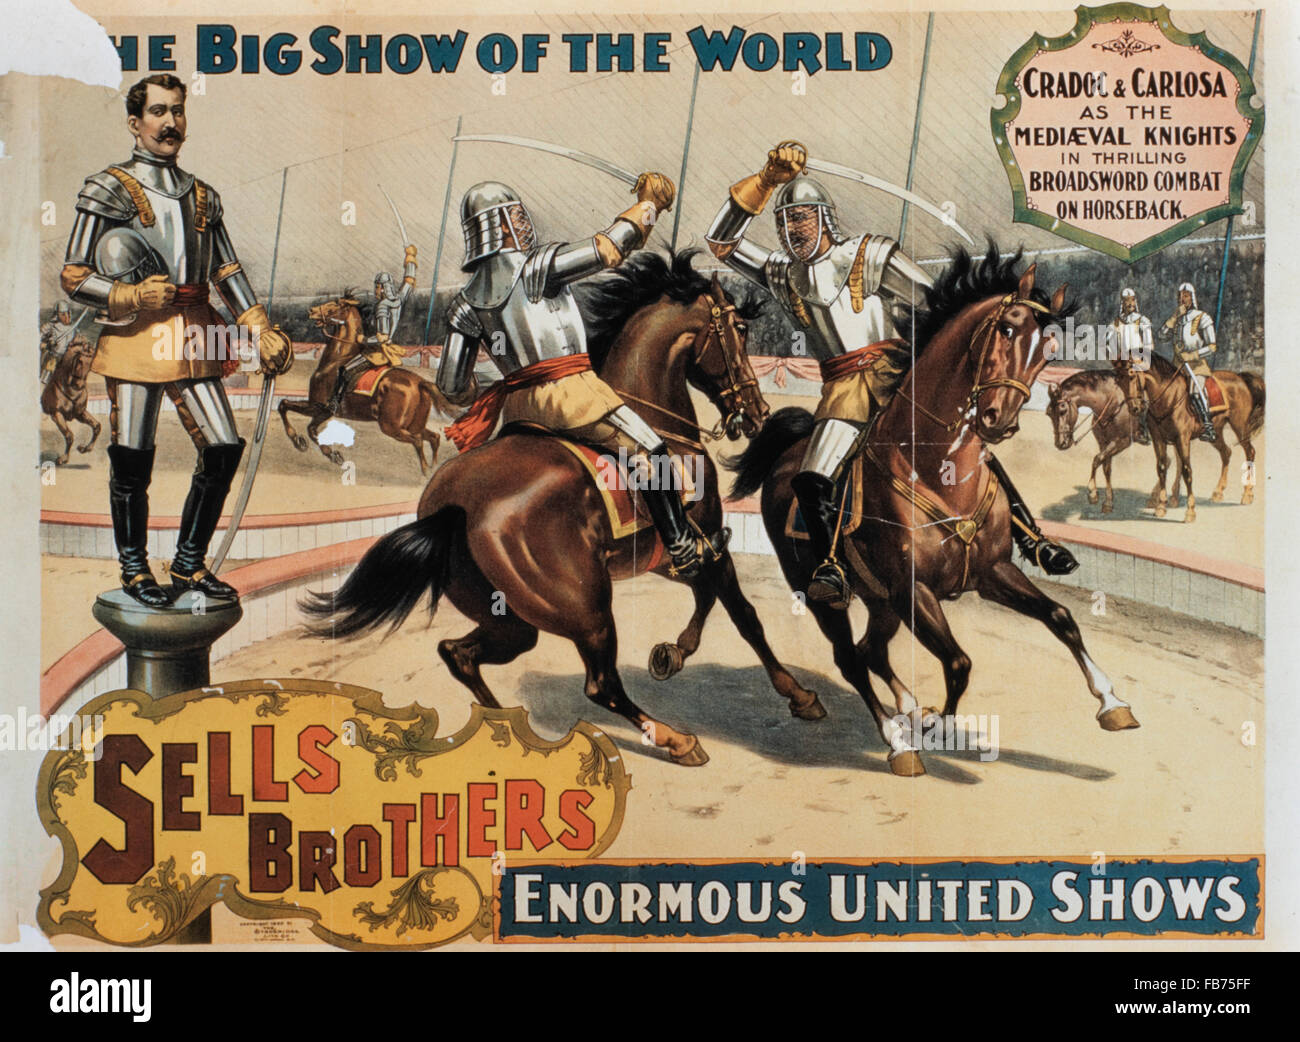 Sells Brothers' Enormous United Shows, Medieval Knights in Combat, Circus Poster, circa 1880's - Stock Image